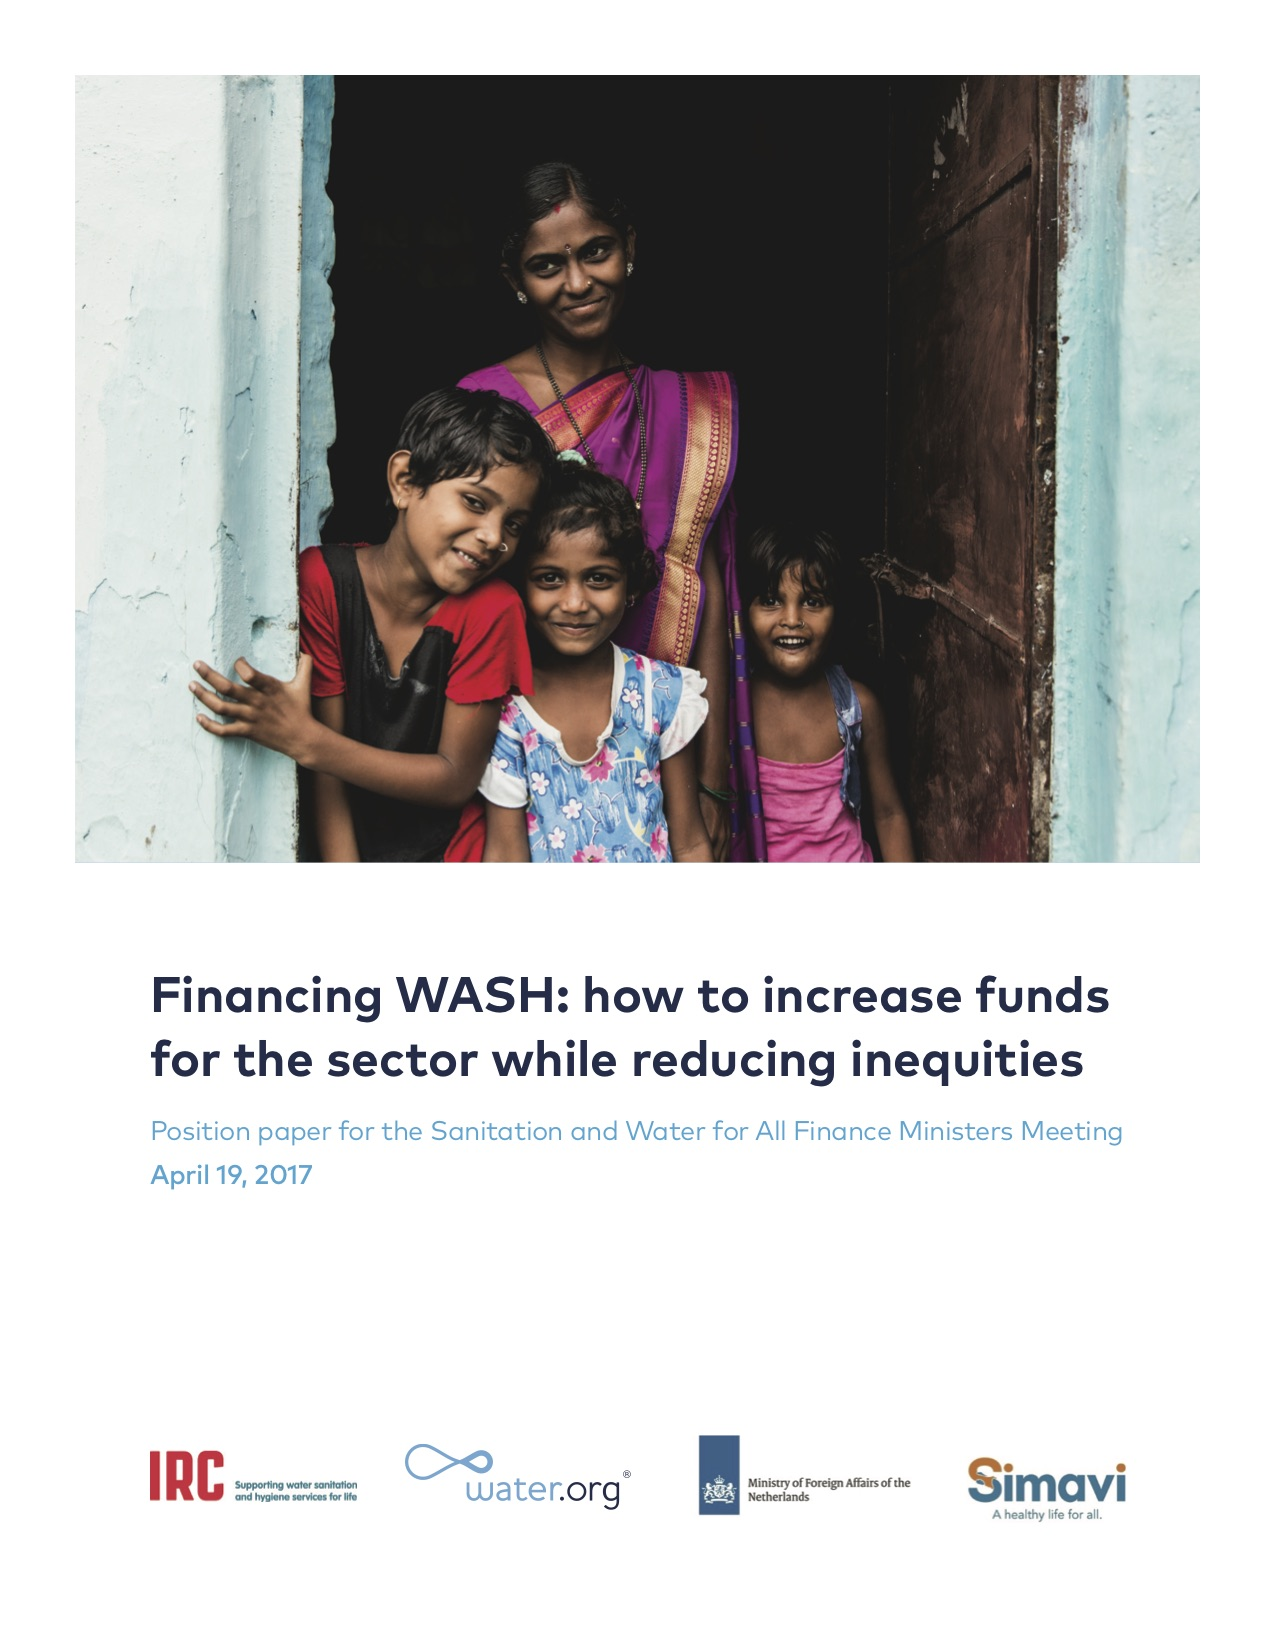 Financing WASH: how to increase funds for the sector while reducing inequities